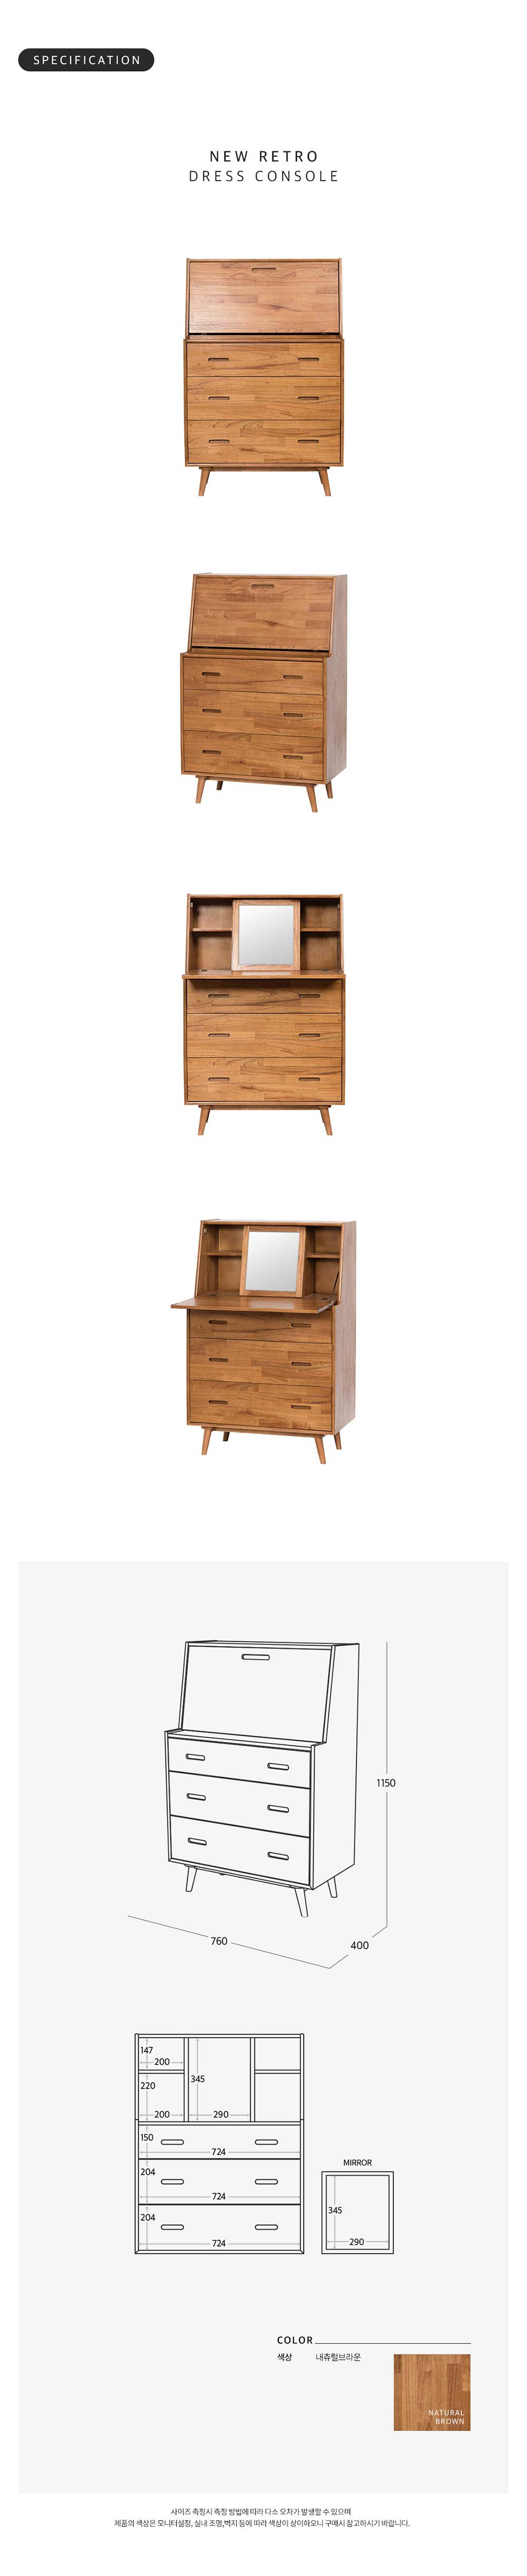 New_Retro_Chest_of_3_Drawers_with_Vanity_Table_Furniture_Singapore_Online_specification_by_born_in_colour